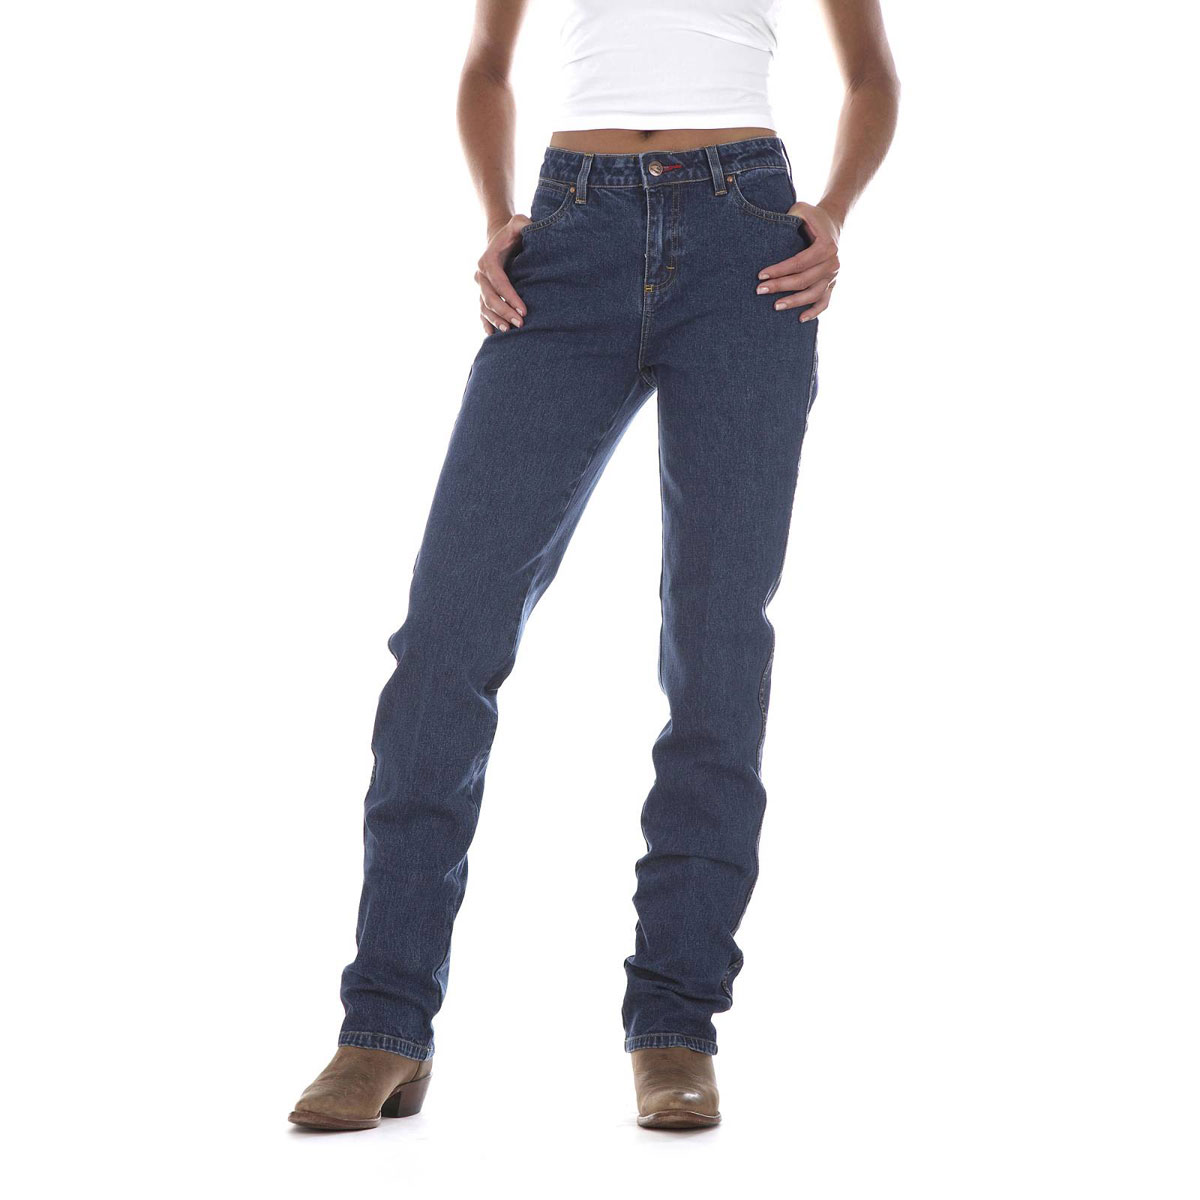 Get your Wrangler Women's Premium Patch Mae Mid Rise Jeans